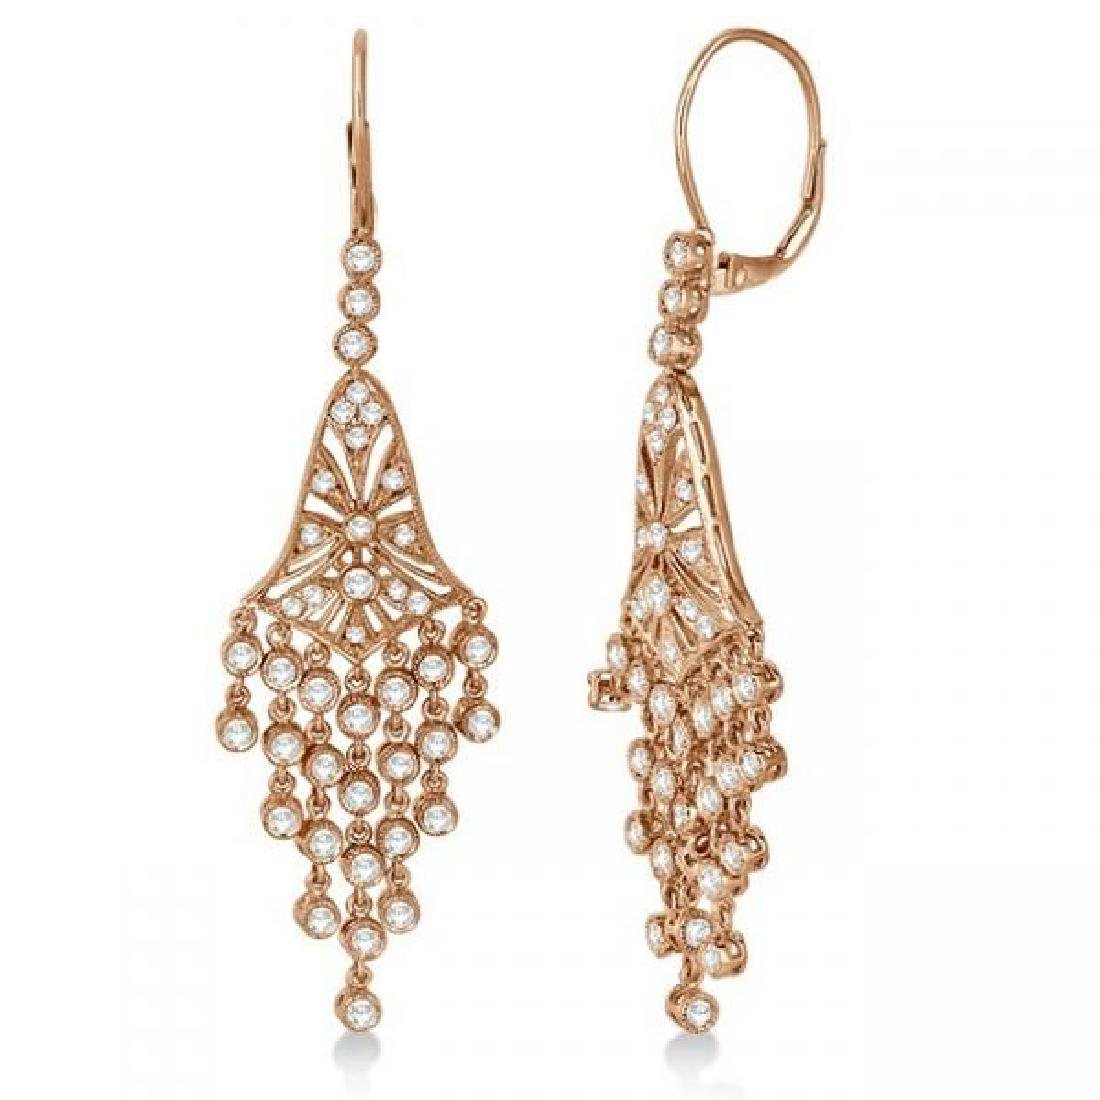 Bezel-Set Dangling Chandelier Diamond Earrings 14K Rose